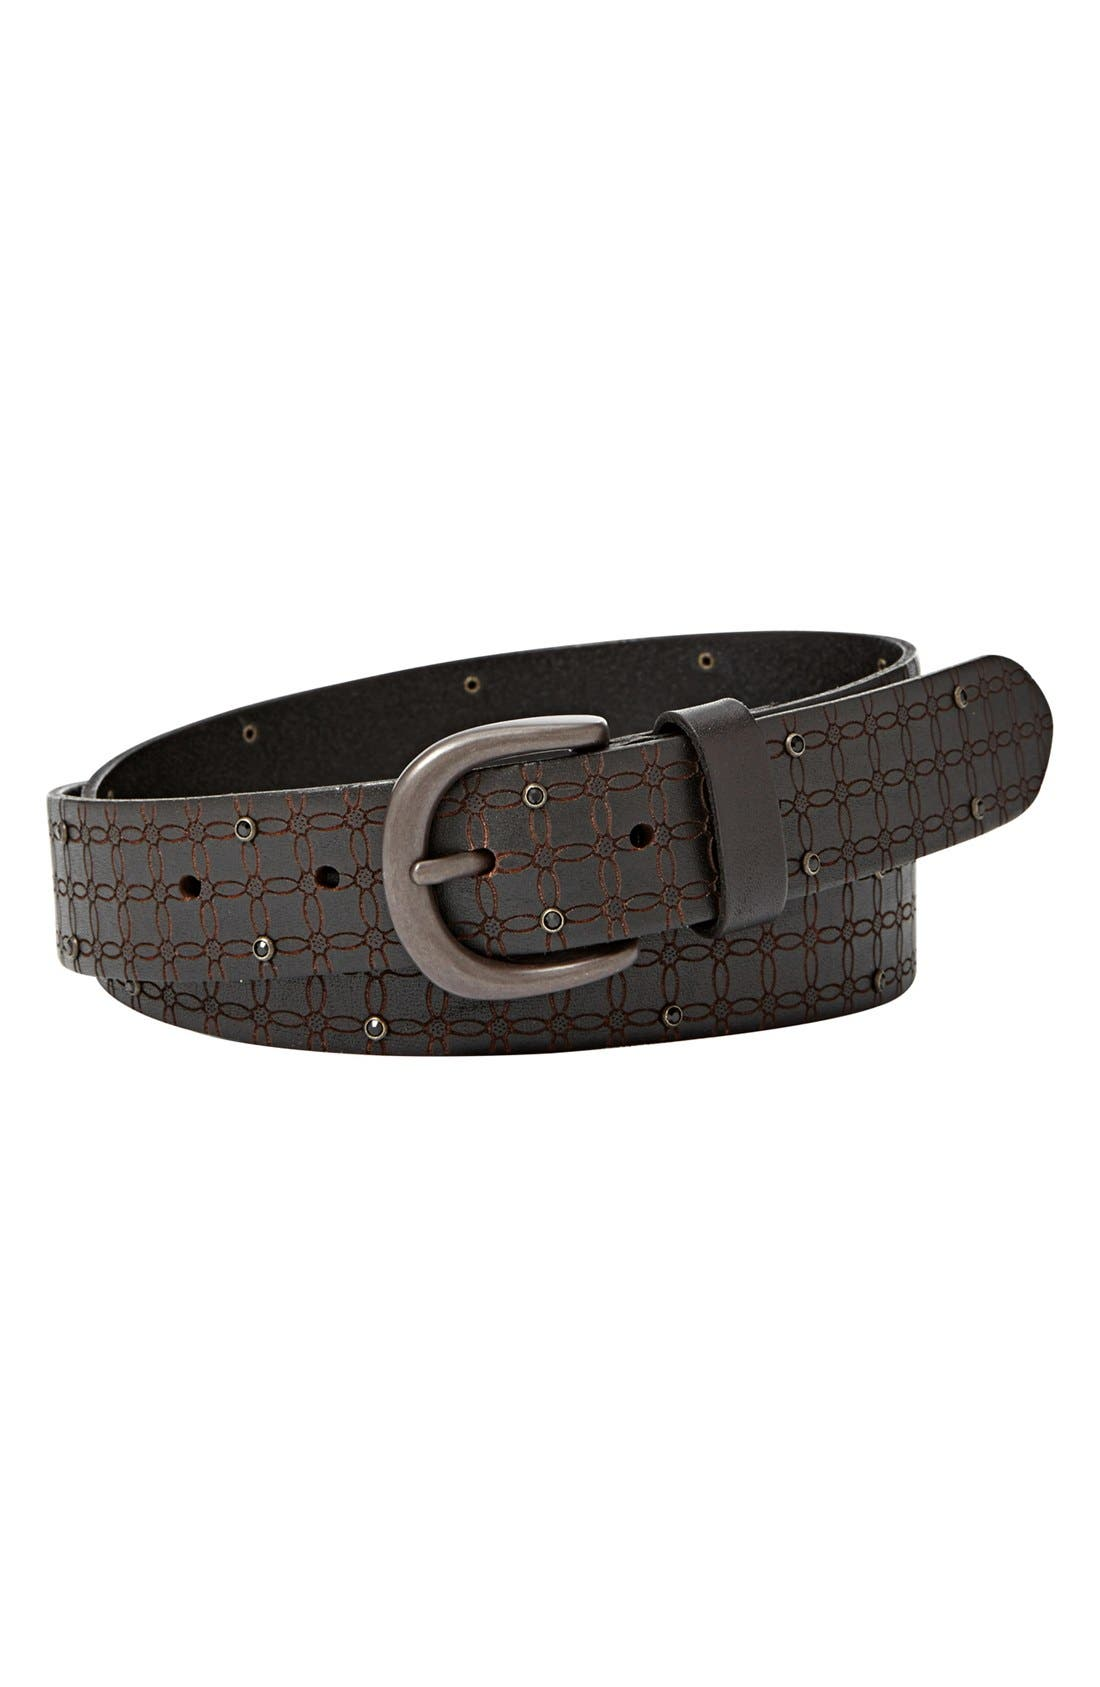 Main Image - Fossil Crystal Accent Leather Belt